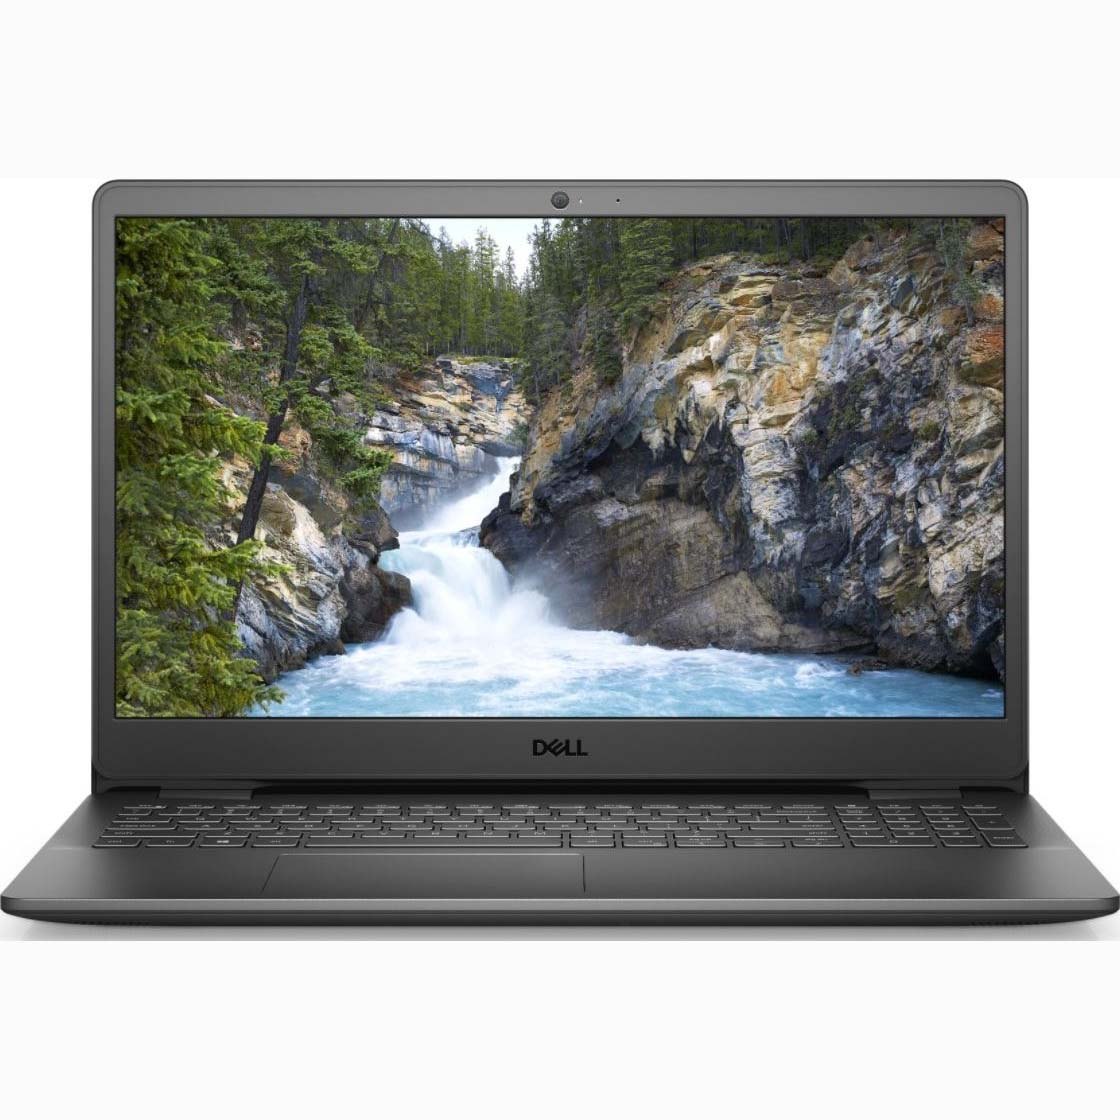 NOTEBOOK DELL VOSTRO 3500 I7 1165G7  2.8GHZ UP-TO 4.7GHZ 12M 8G DDR4 1T VGA NVIDIA 330MX 2G DDR6 15.6 BLACK ,Laptop Pc